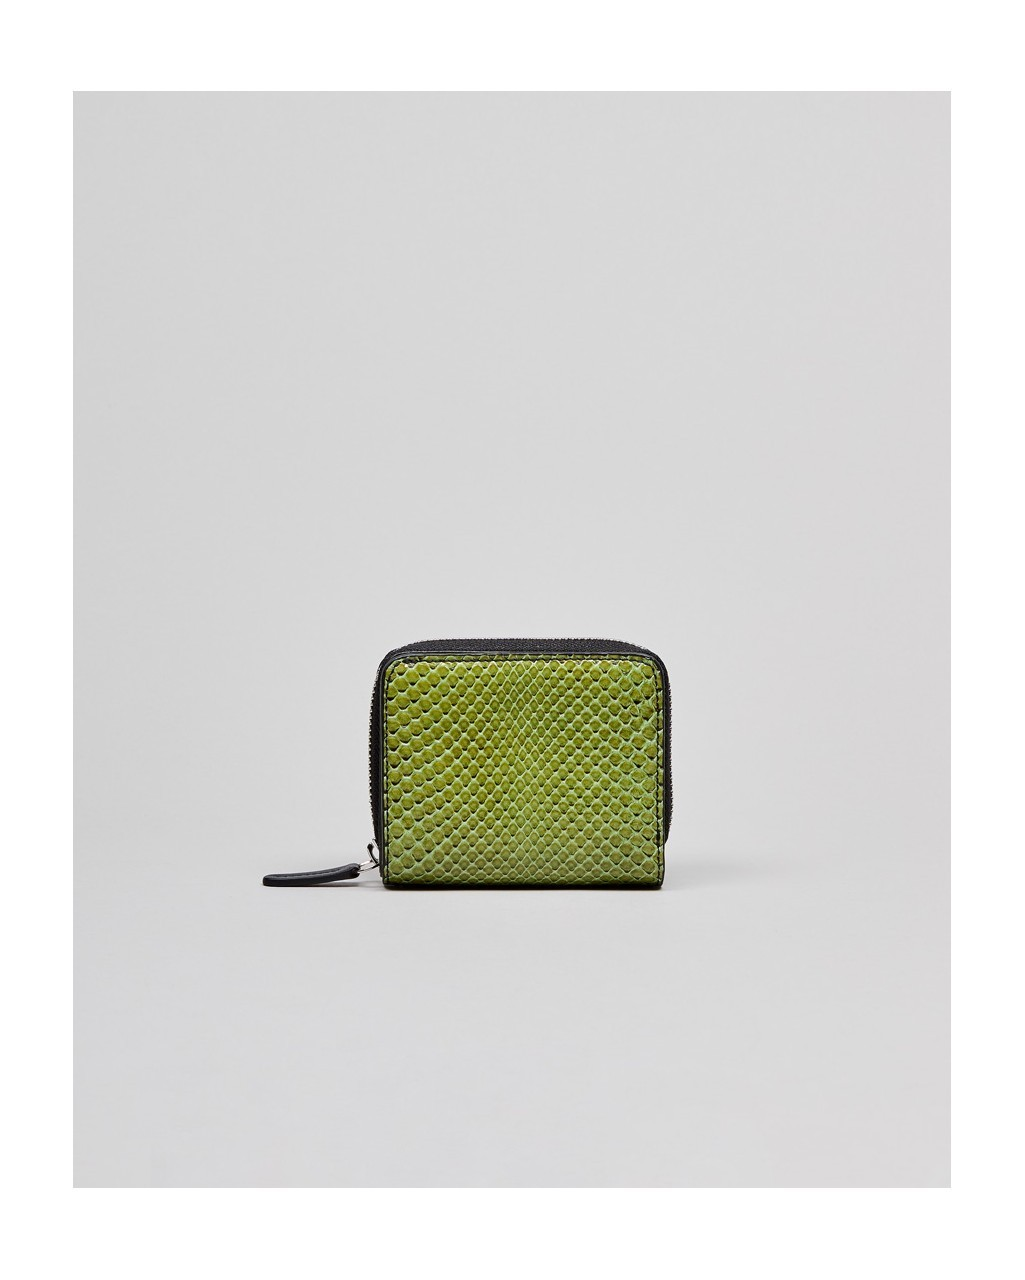 shop lupo barcelona accessories